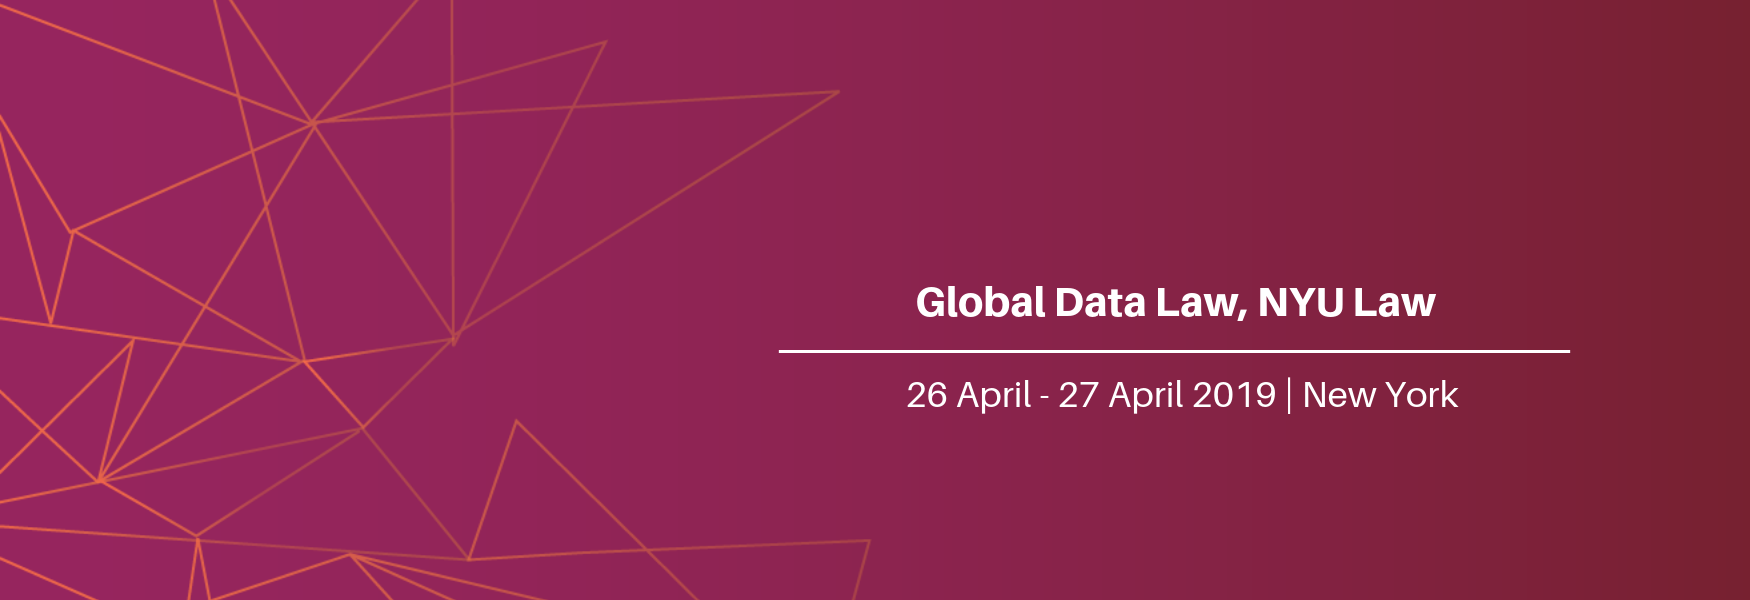 Global Data Law Conference, NYU Law